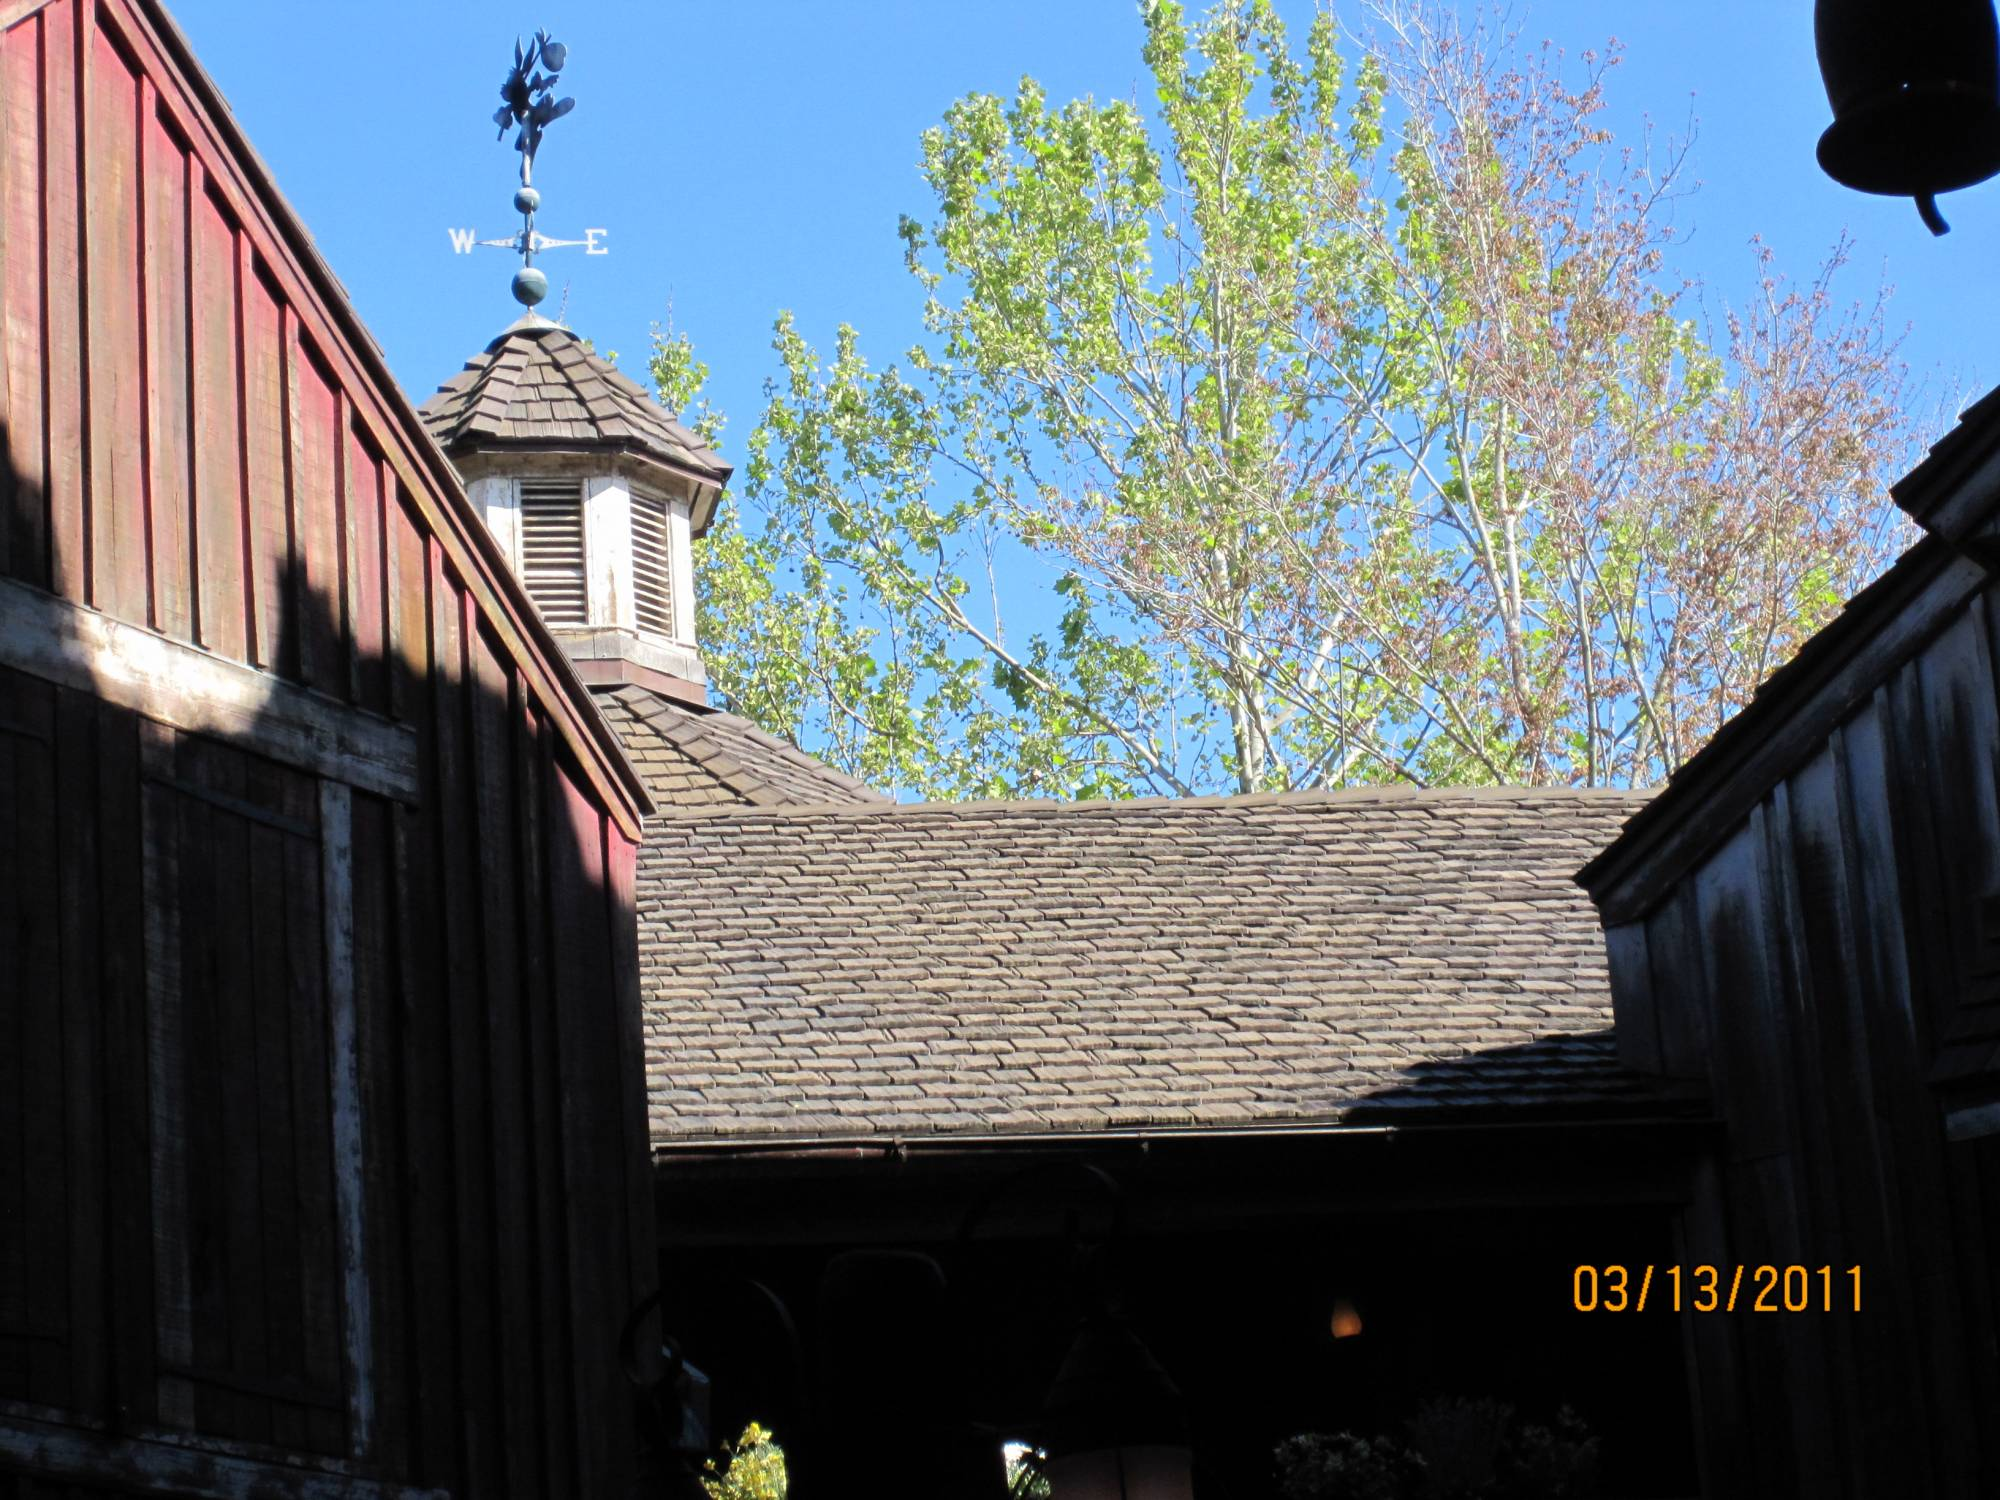 Frontierland Looking Up!